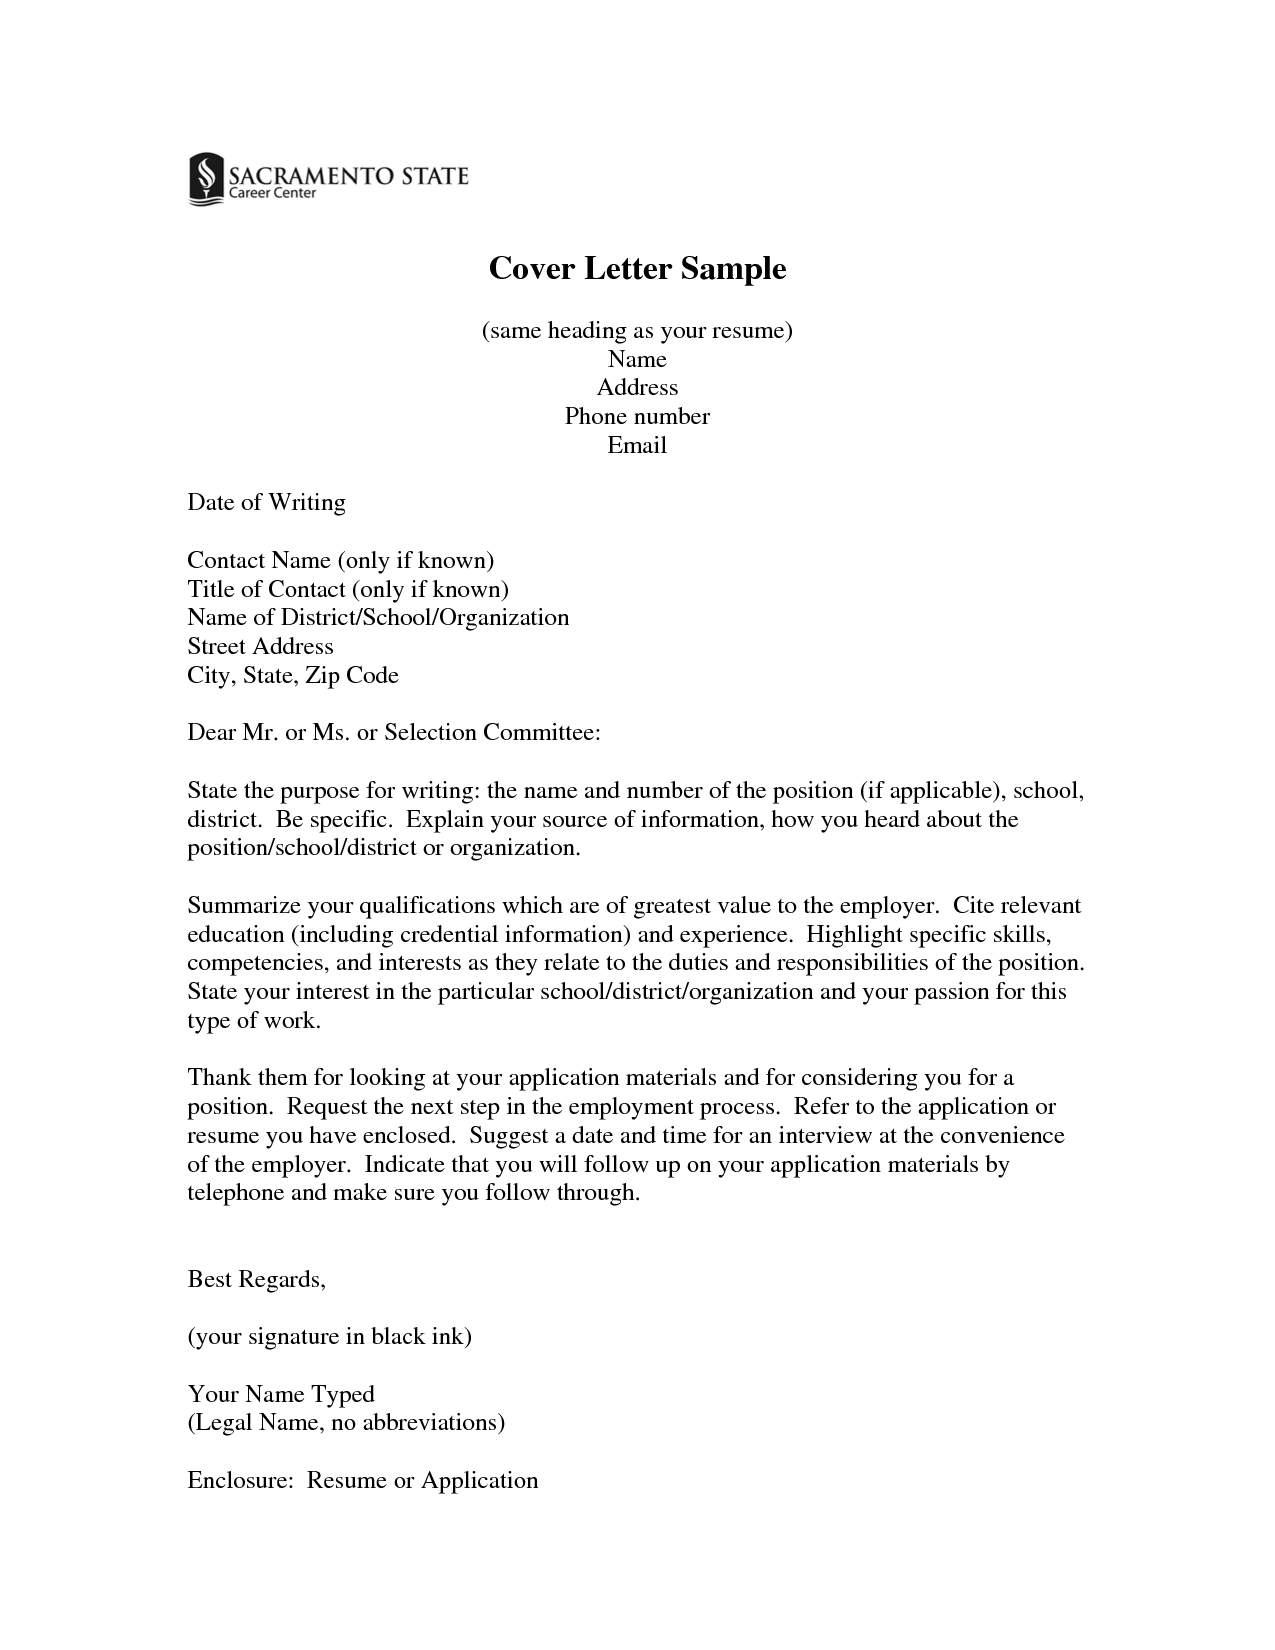 How To Open A Cover Letter Captivating Same Cover Letters For Resume  Cover Letter Sample Same Heading Design Decoration